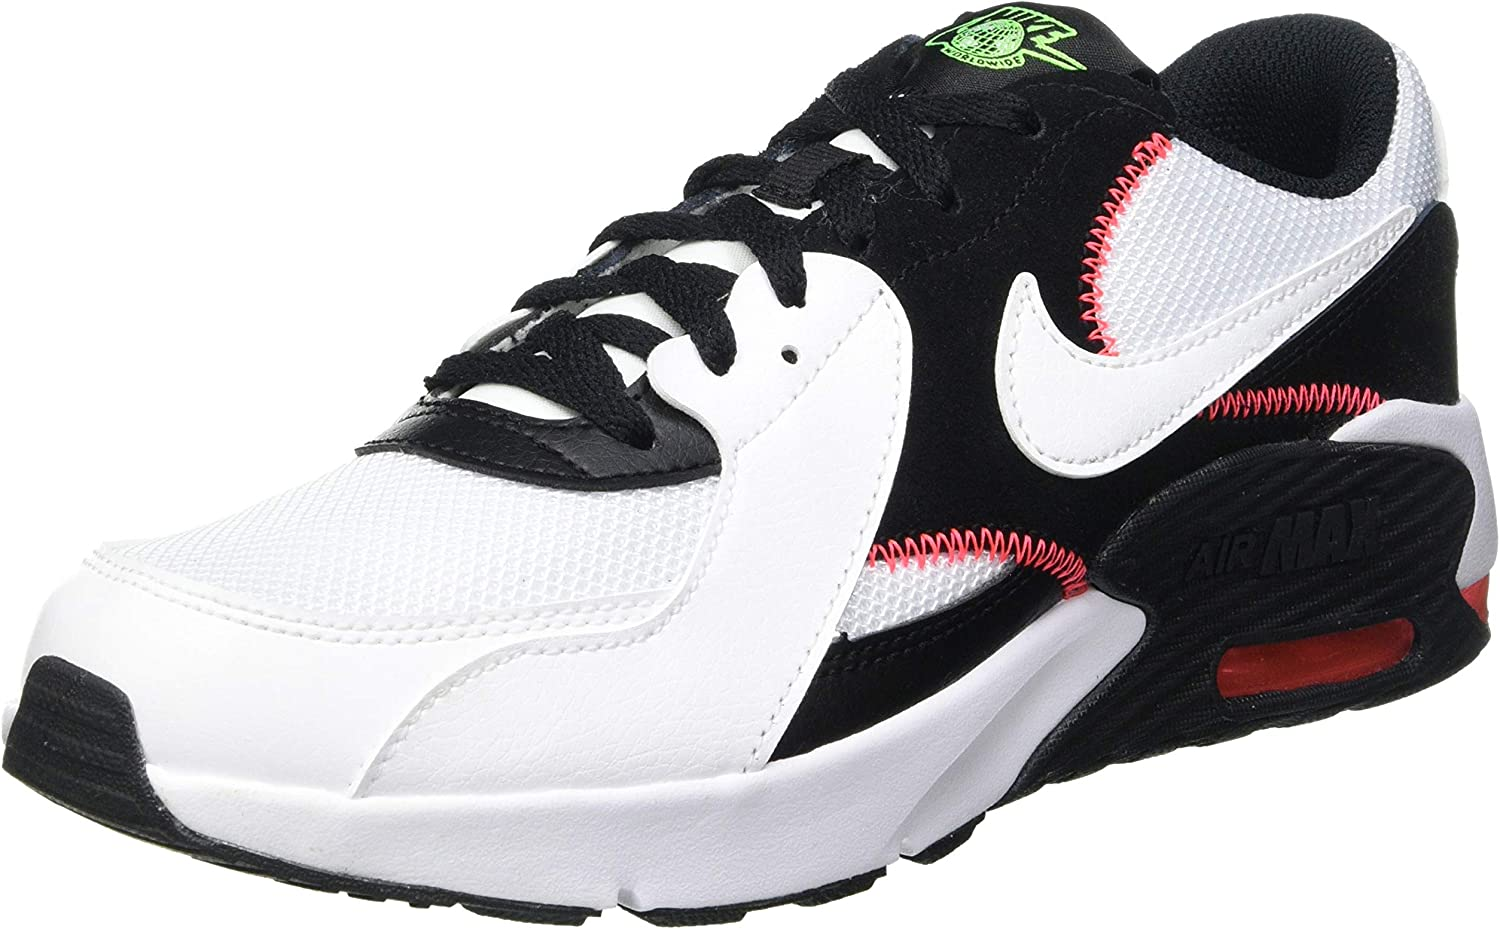 Nike Air Max Excee (ps) Little Kids Casual Running Sneaker Cd6892-103